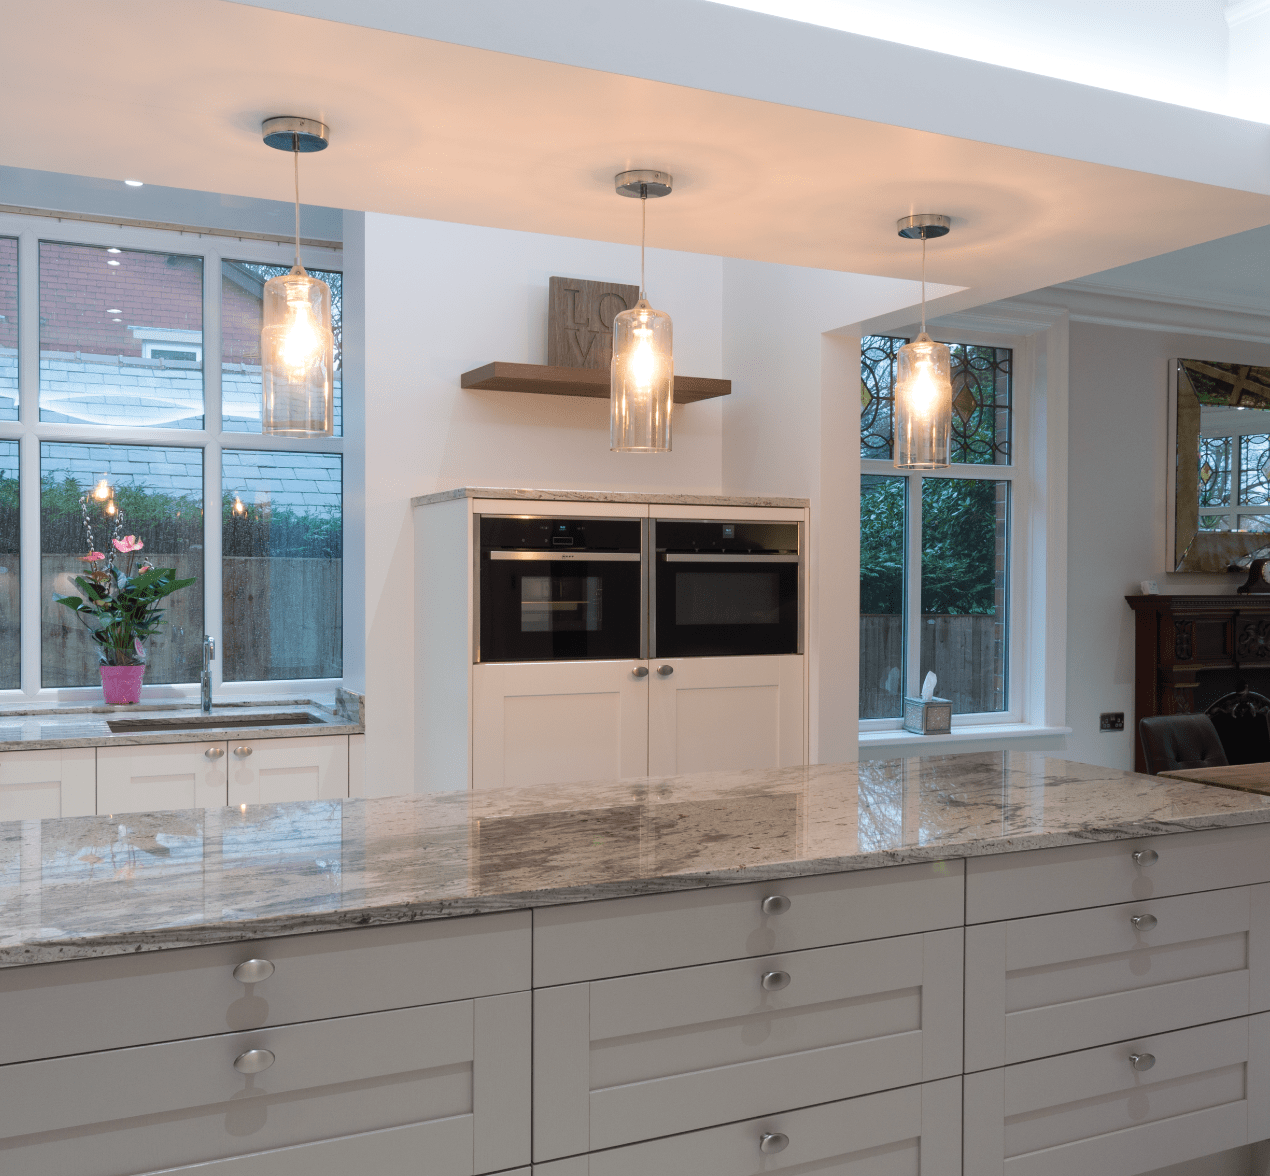 shaker style kitchen make a island traditional with modern twist for customers